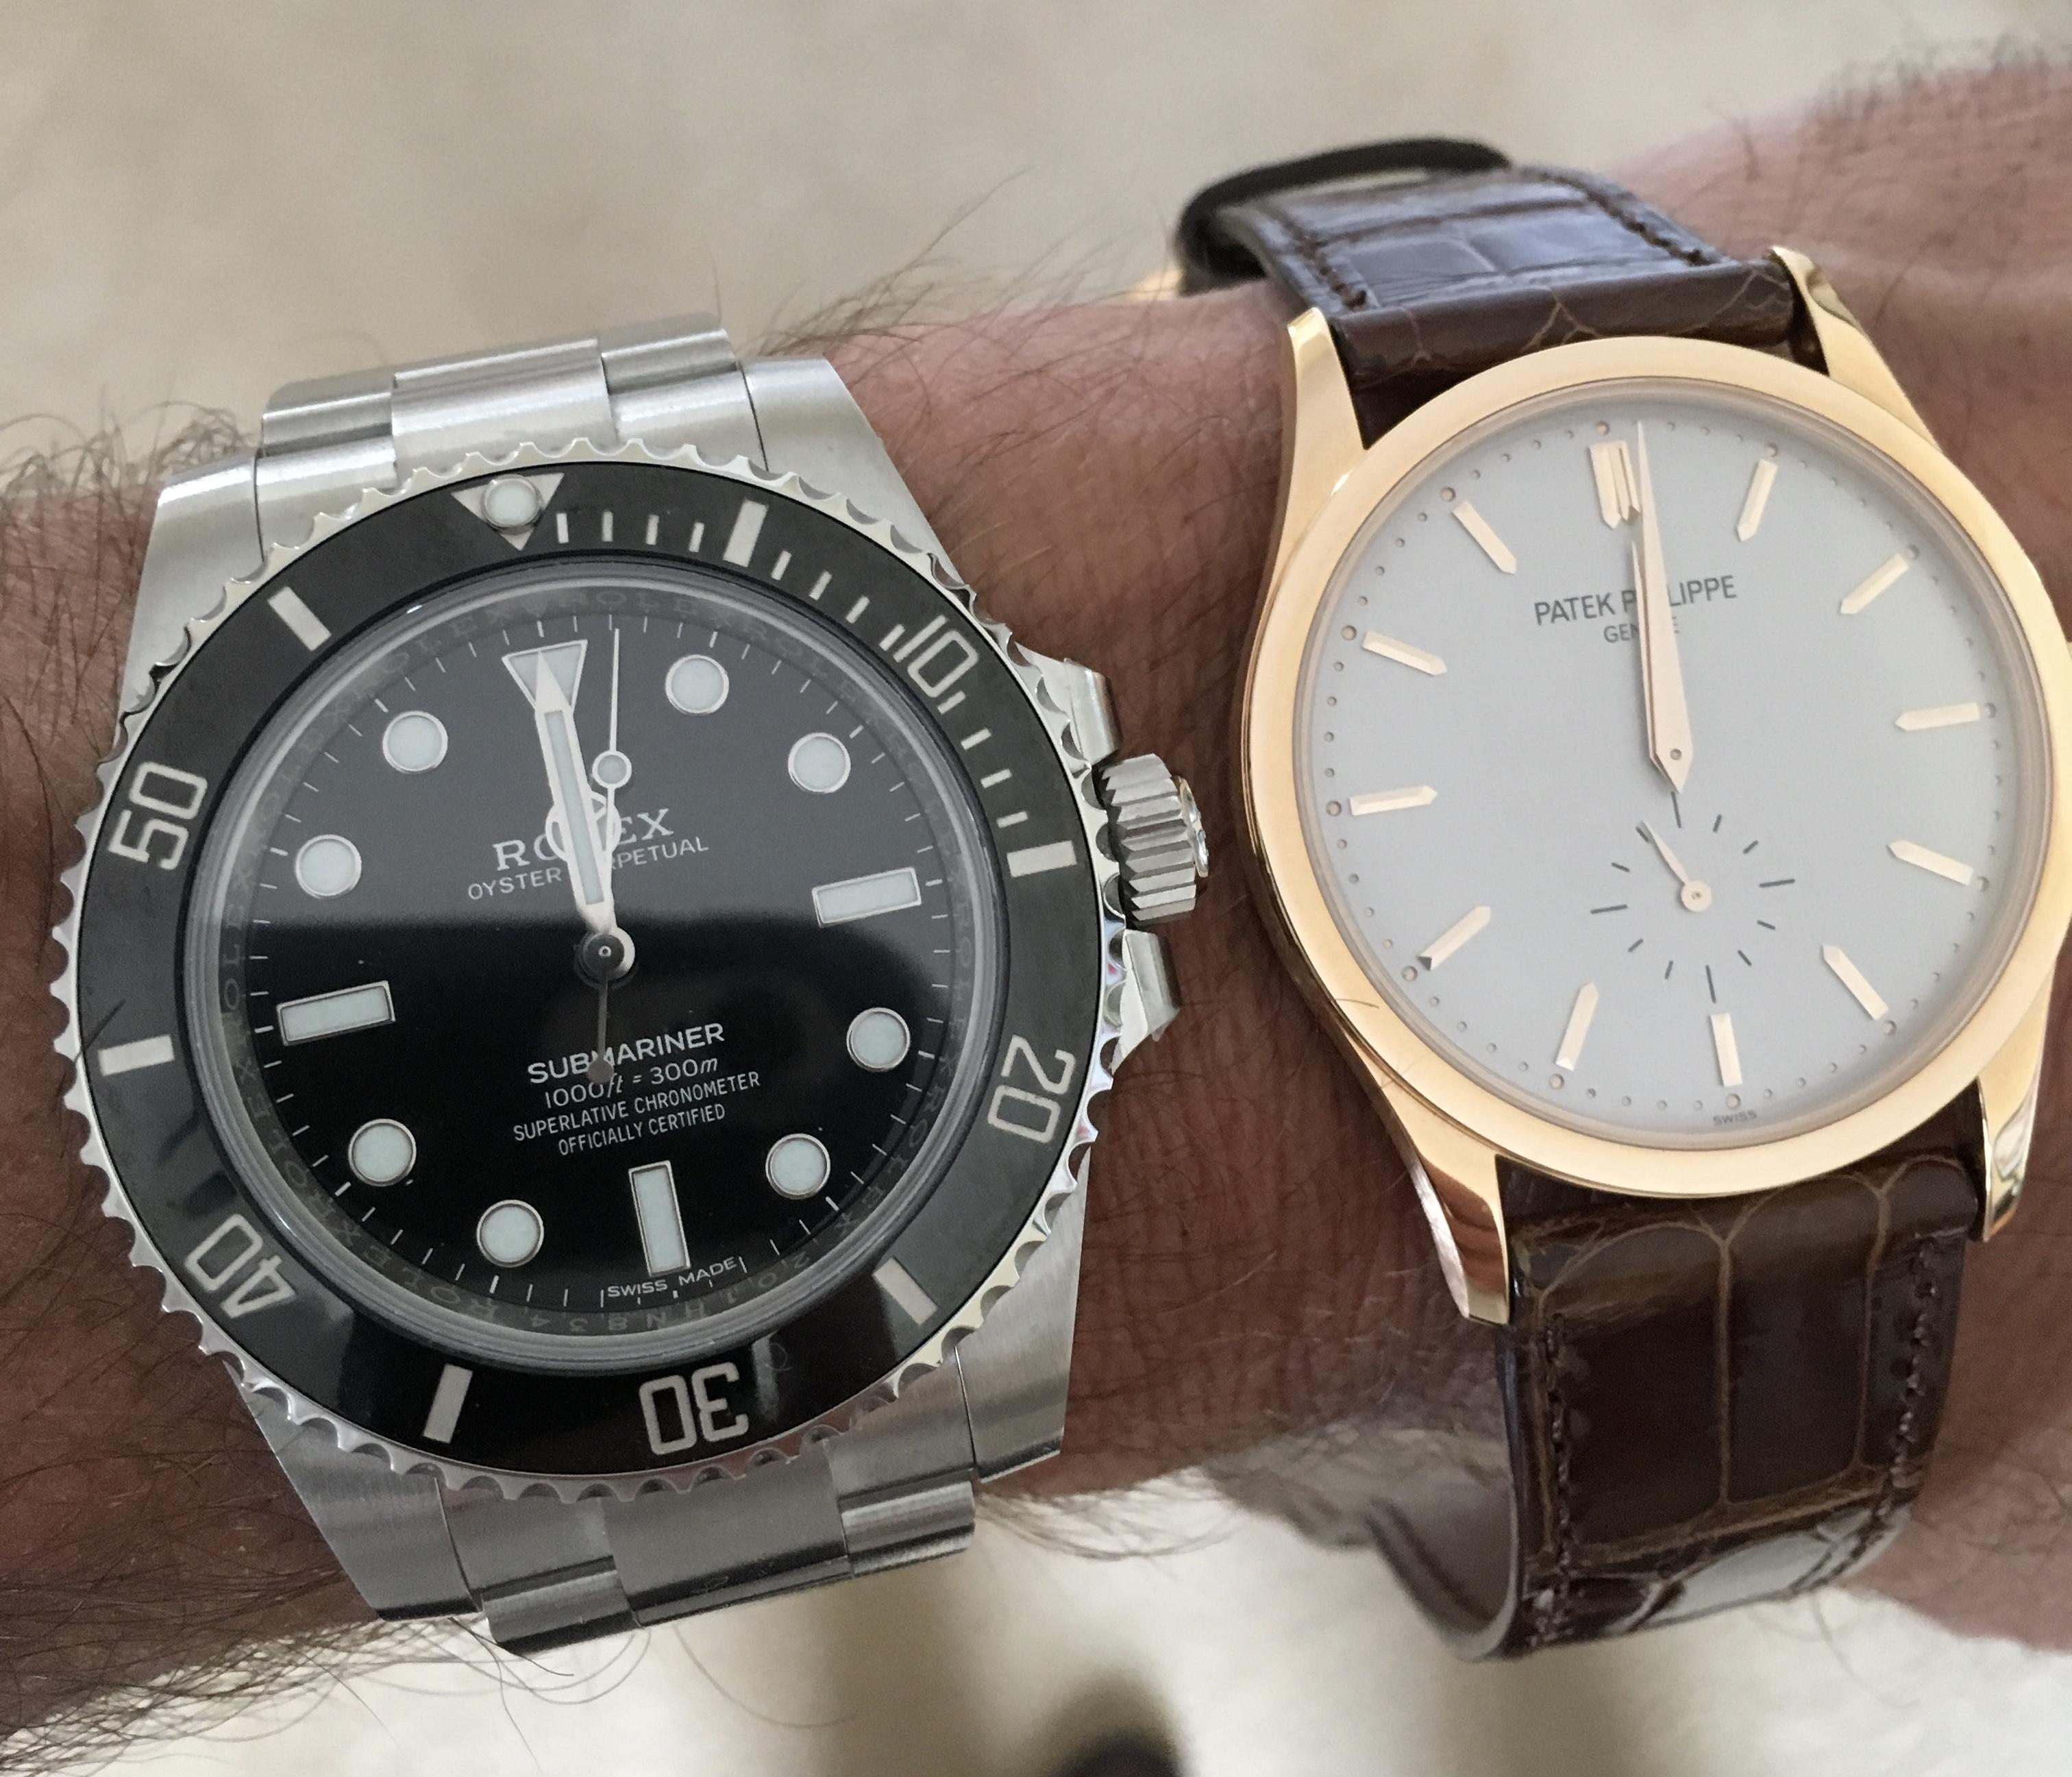 Rolex Patek Rolex And Patek Philippe Completed My Two Watch Collection Watches